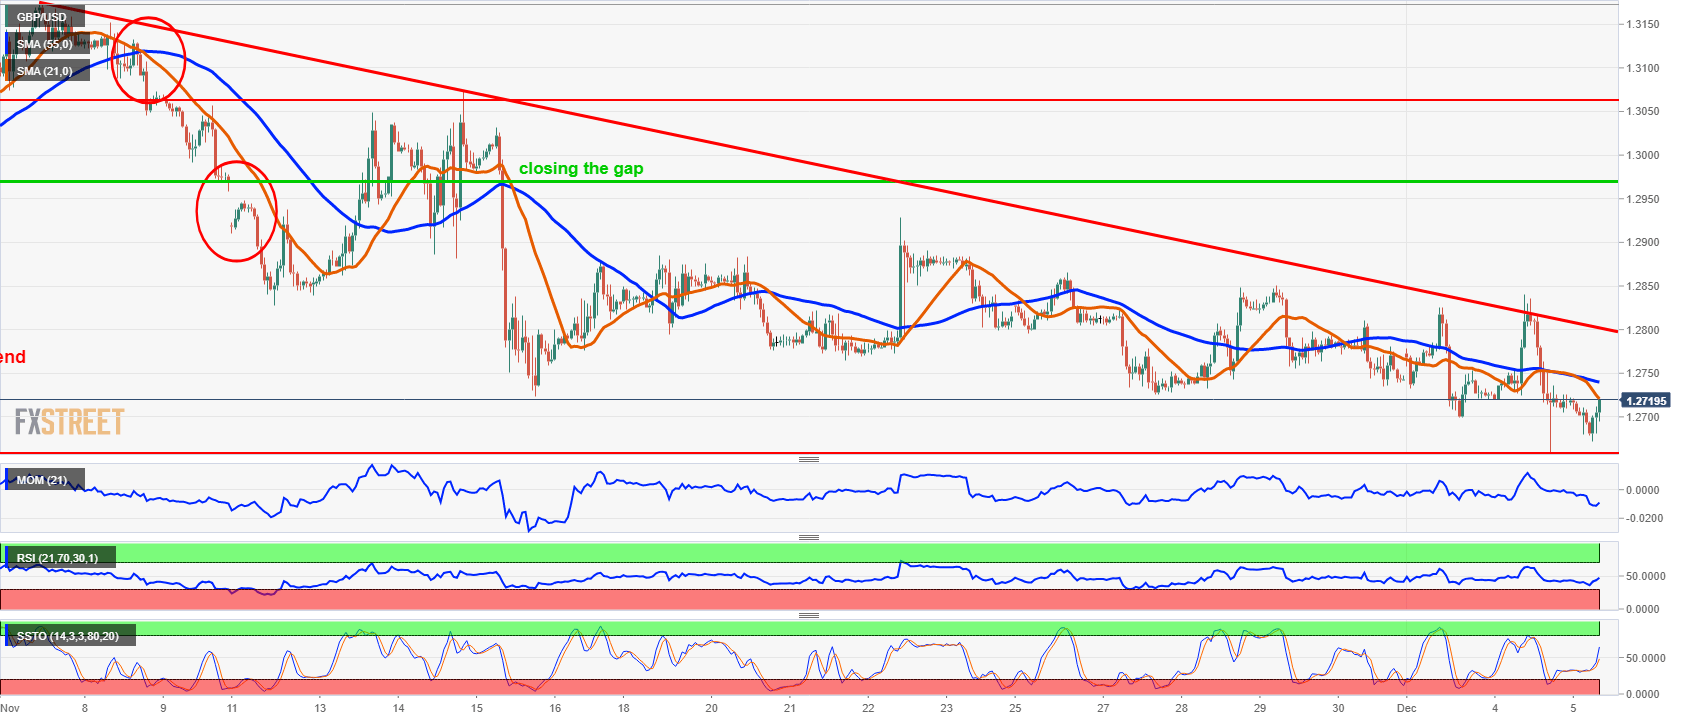 gbpusd_1-hour_chart-636795952265187637.png